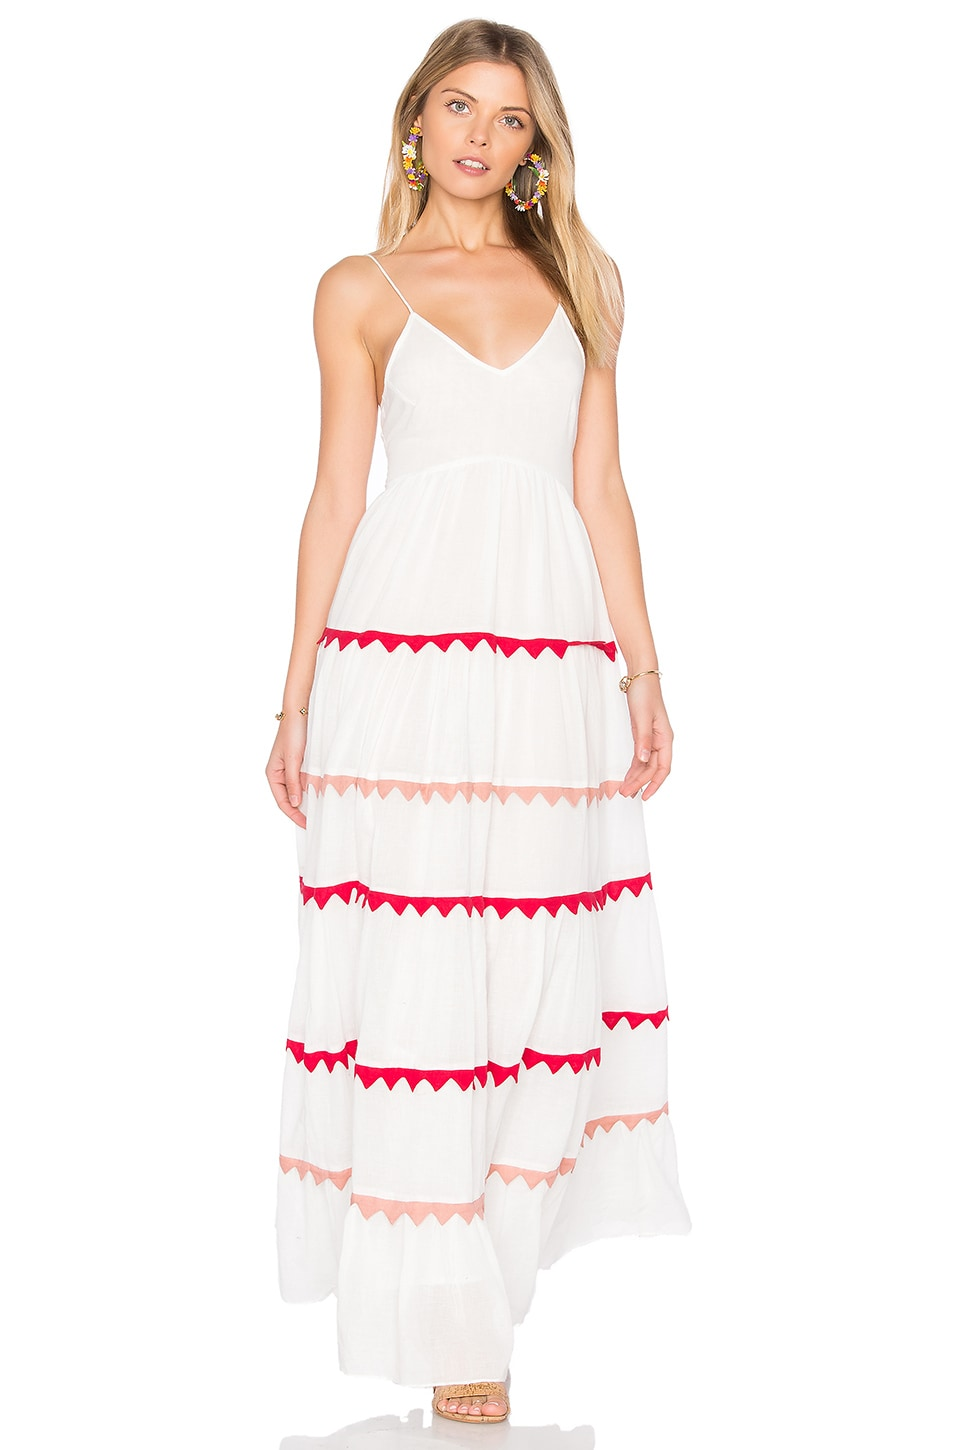 Carolina K Marieta Dress in White & Red